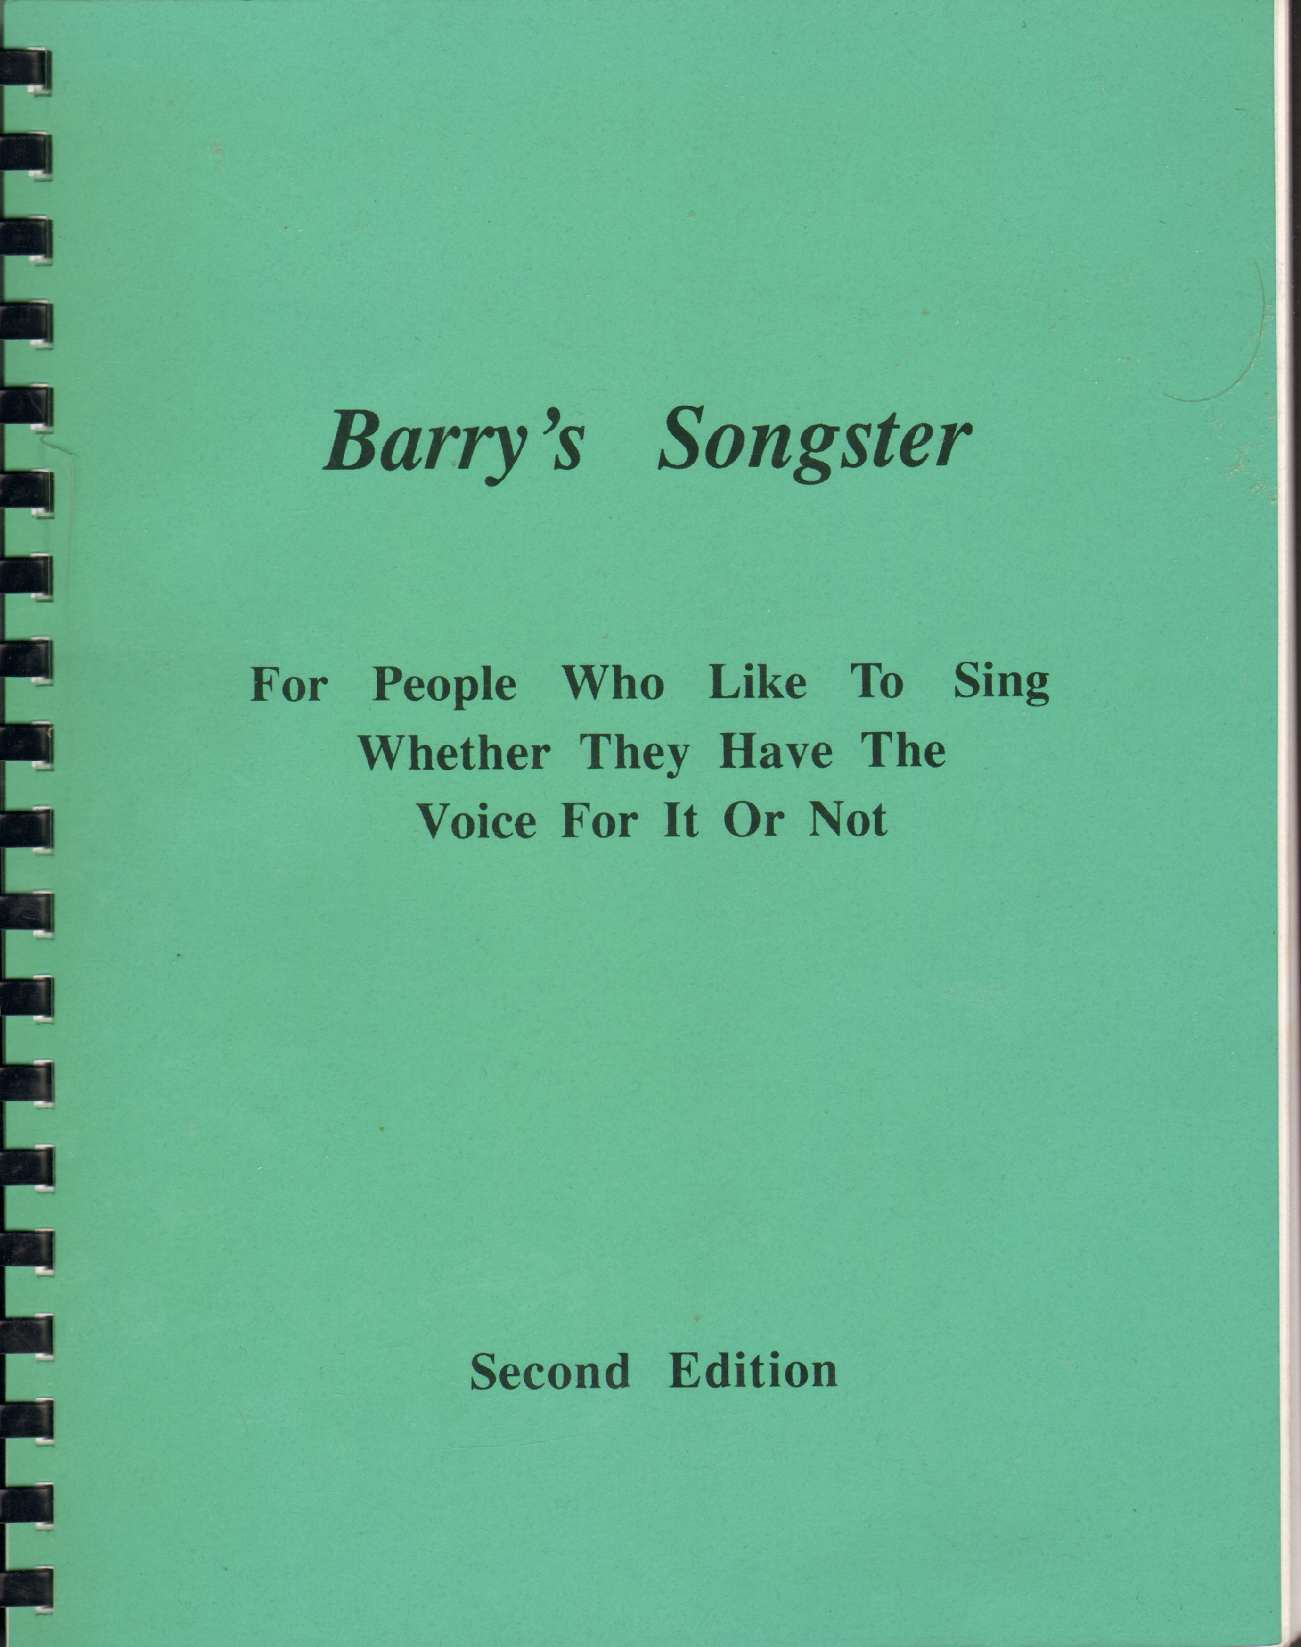 BARRY'S SONGSTER For People Who like to Sing Whether They Have the Voice for it or Not